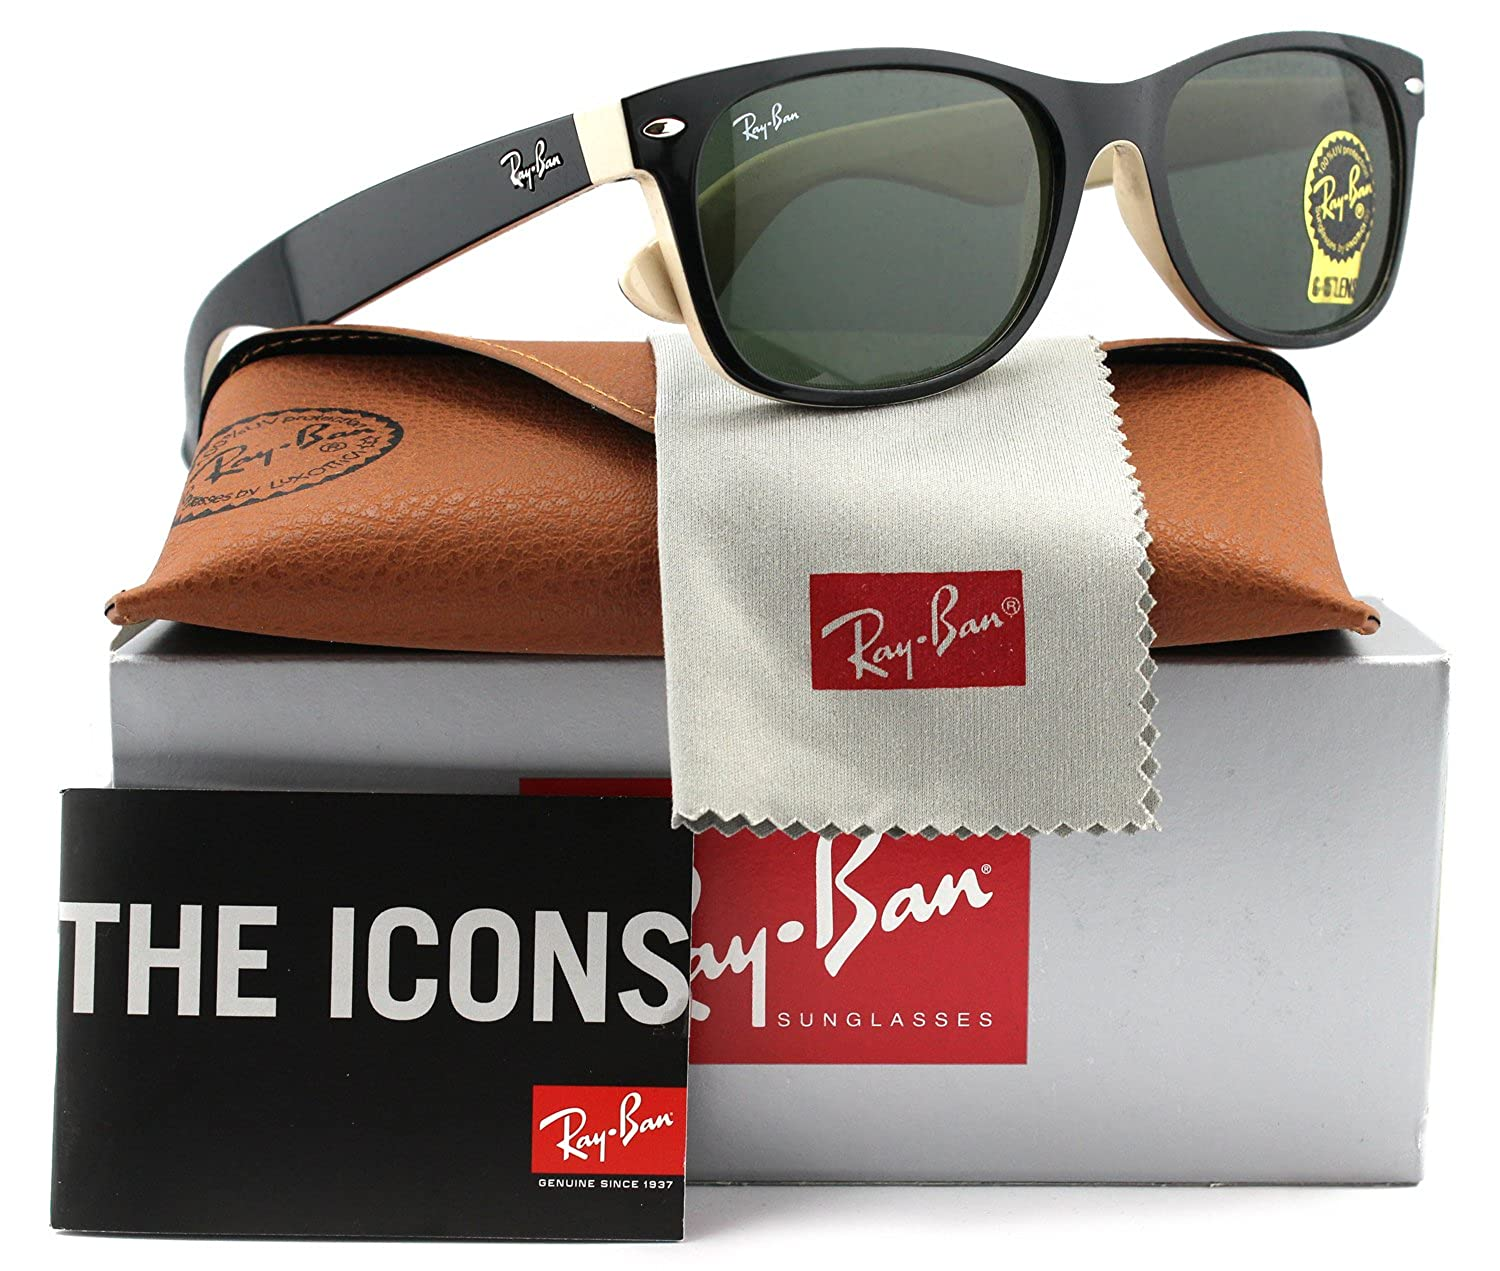 Ray-Ban RB2132 Large New Wayfarer Sunglasses Shiny Black w/Crystal Green (875) 2132 875 55mm Authentic